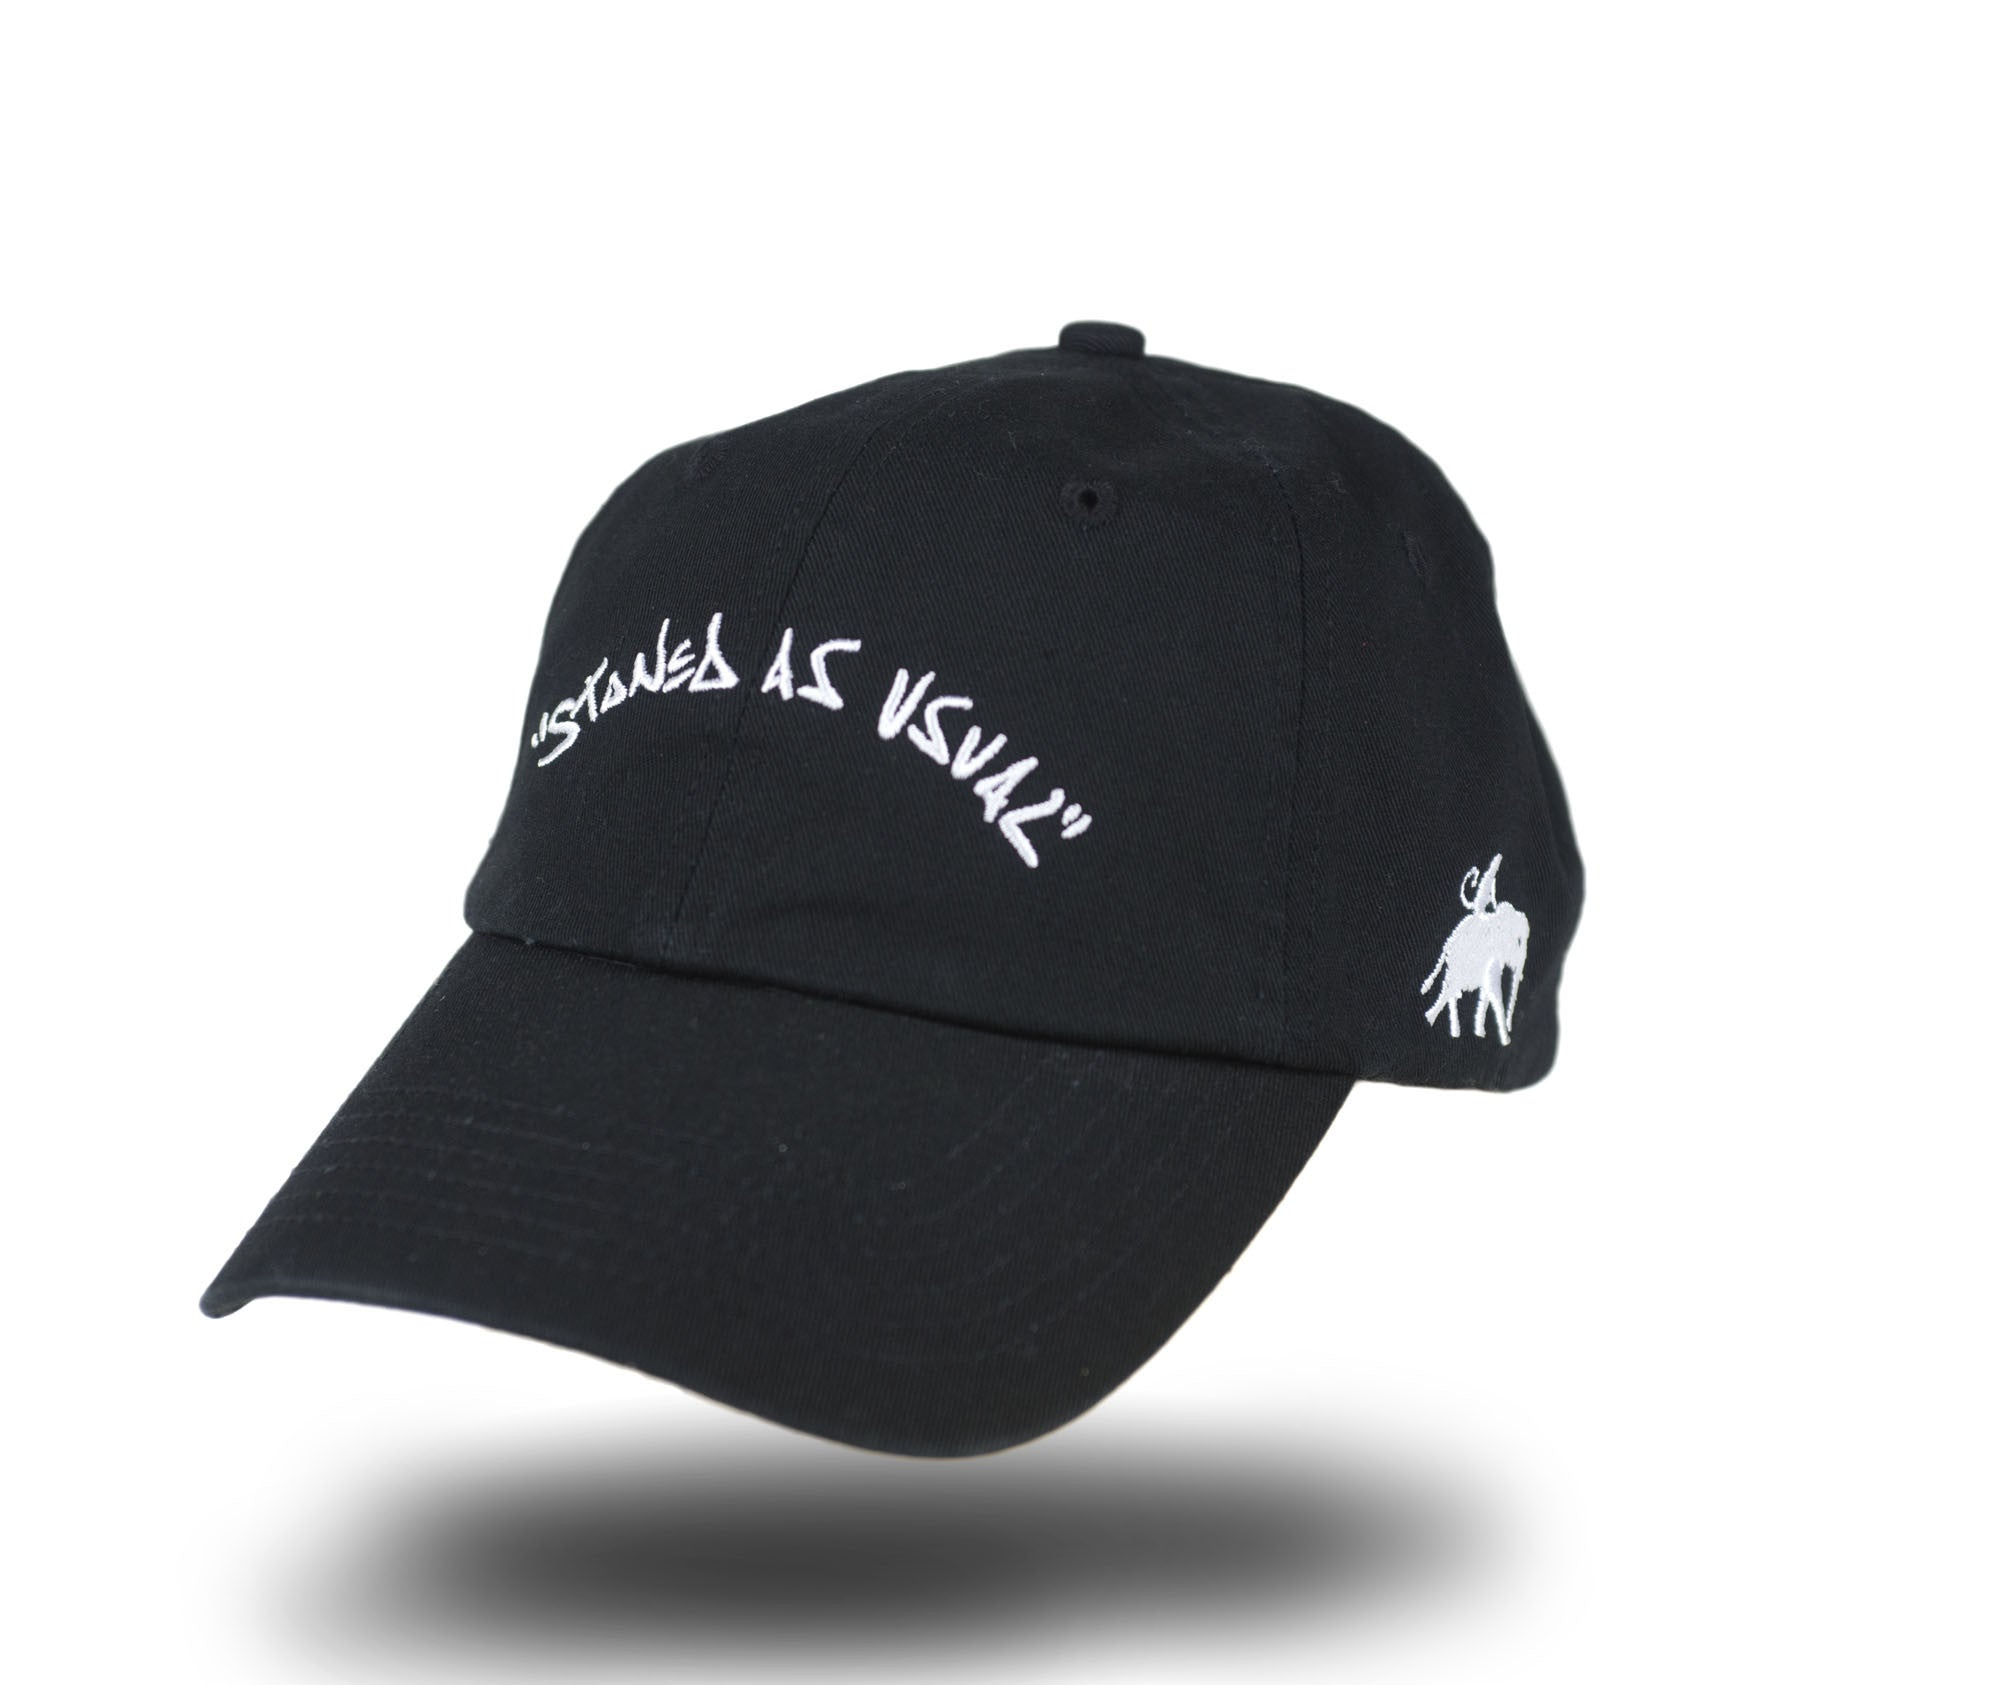 Stoned As Usual Dad Cap - Black